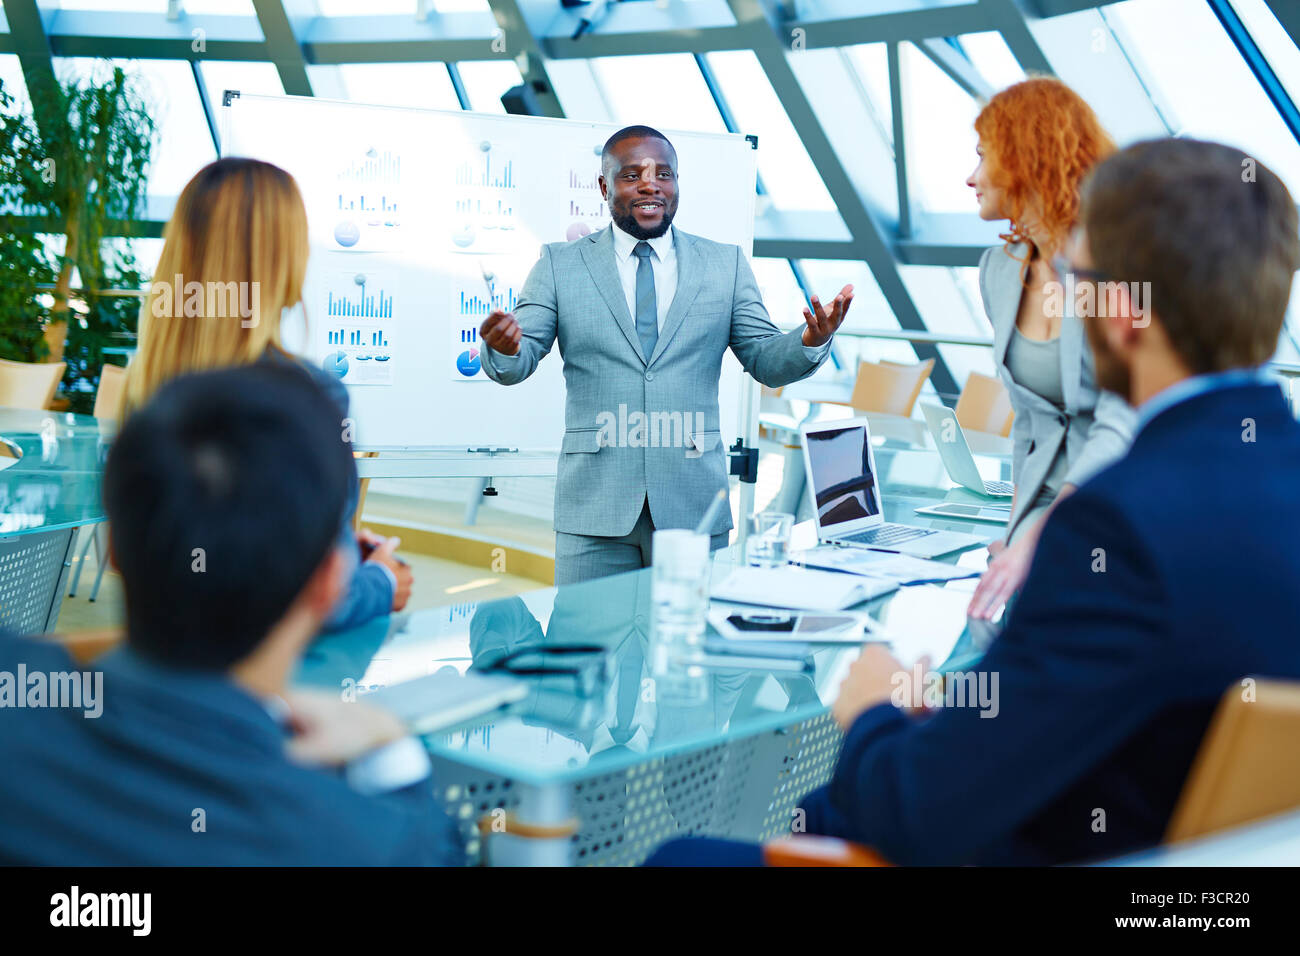 African-american businessman standing by whiteboard and voicing his opinion about data analysis to colleagues - Stock Image